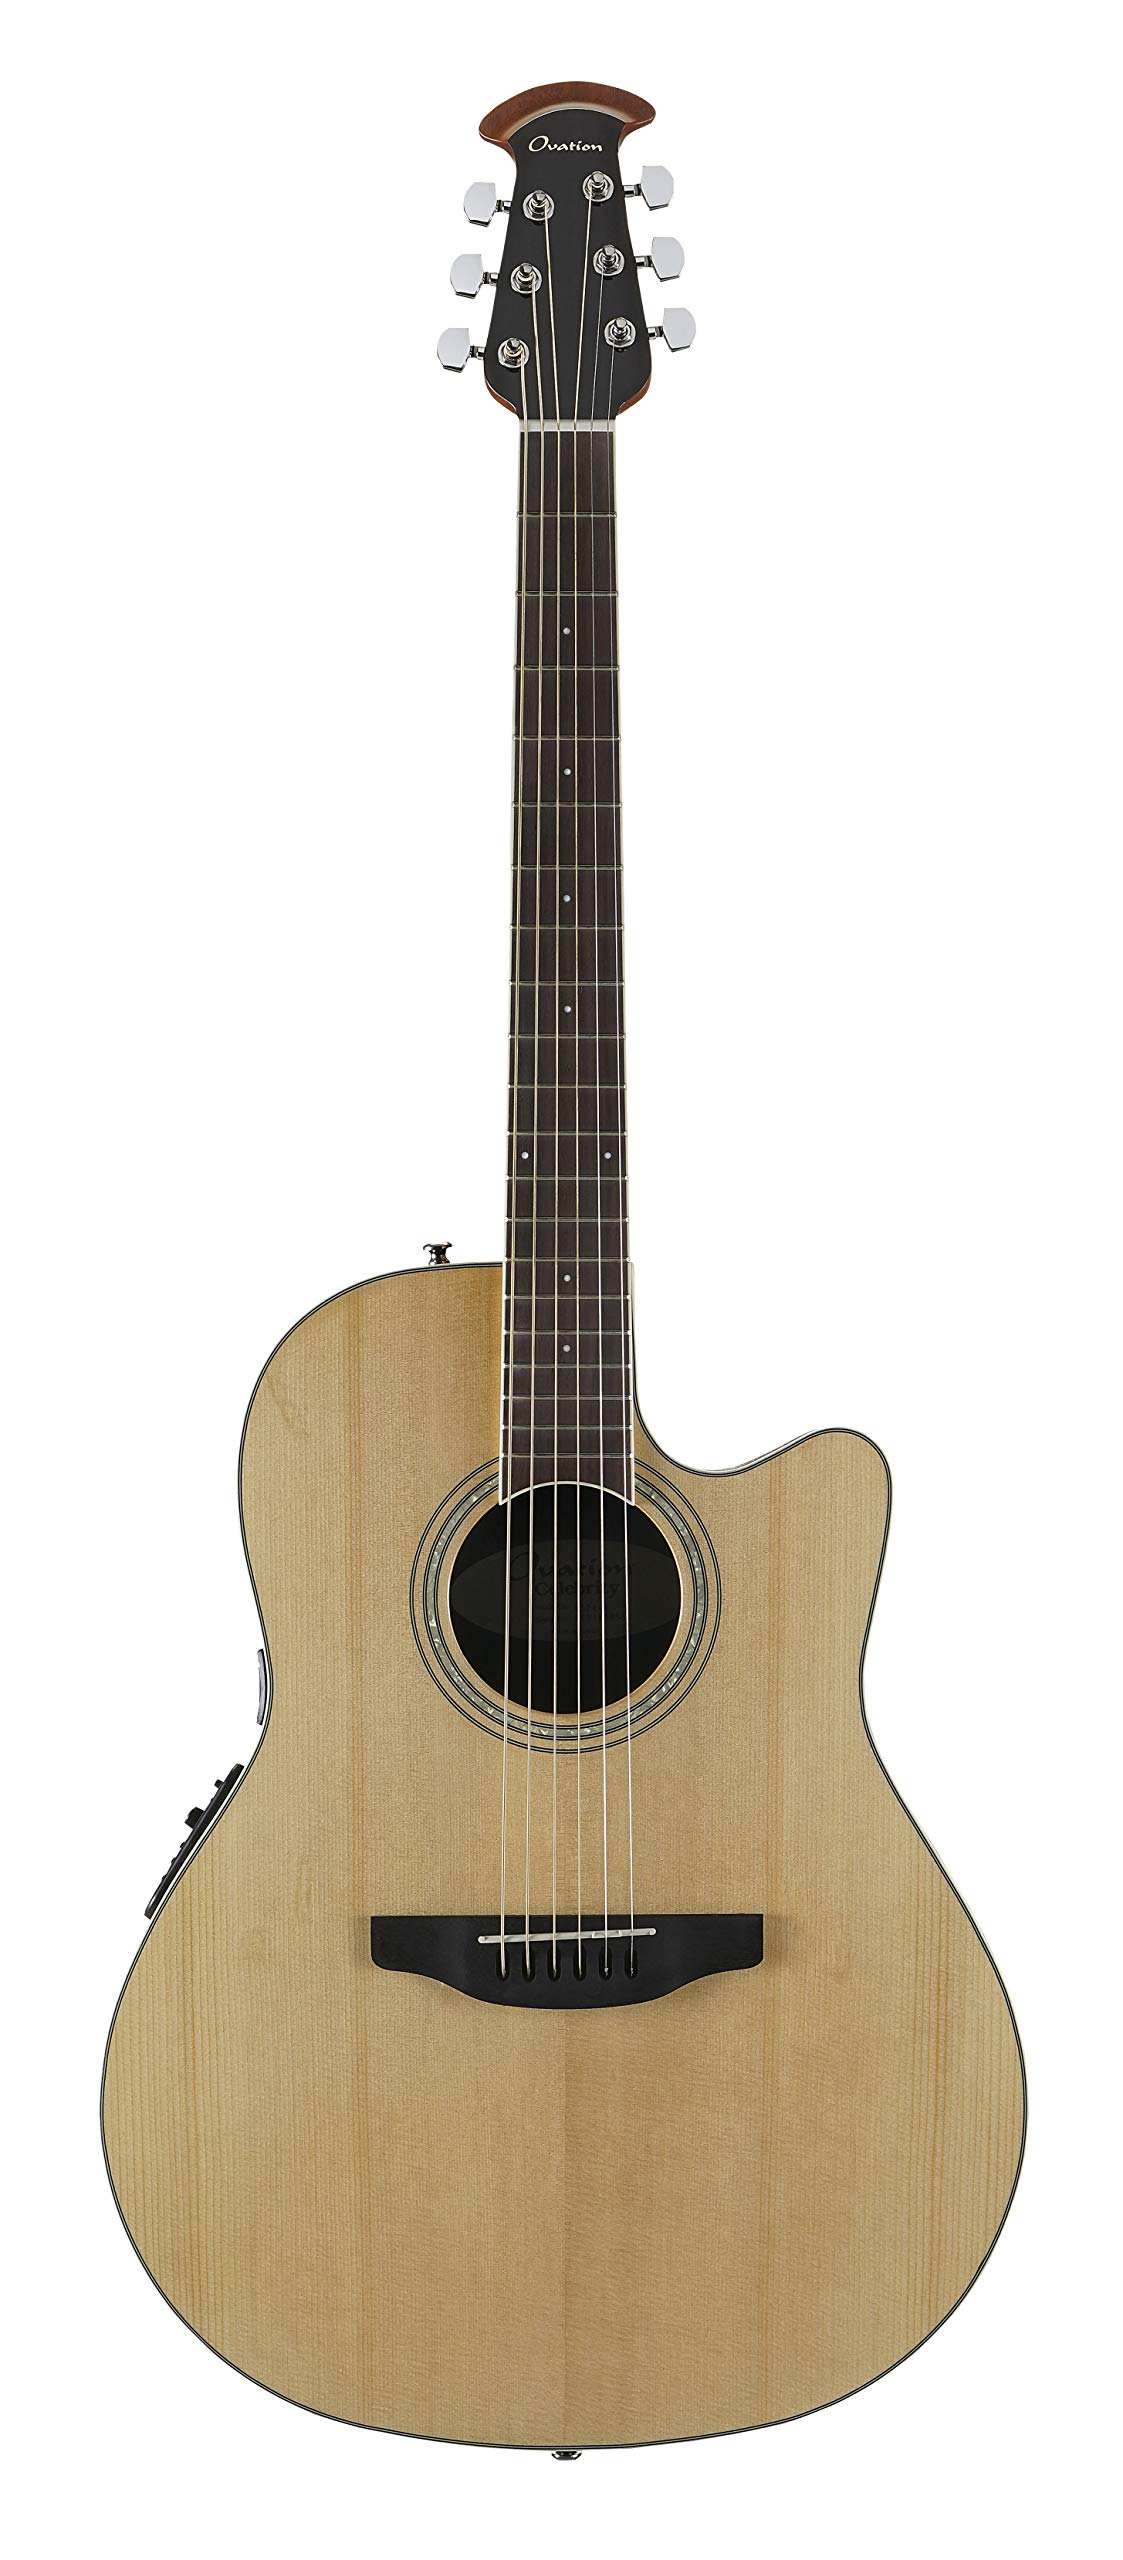 Ovation 6 String Acoustic-Electric Guitar, Right Handed, Natural (CS24-4) by Ovation